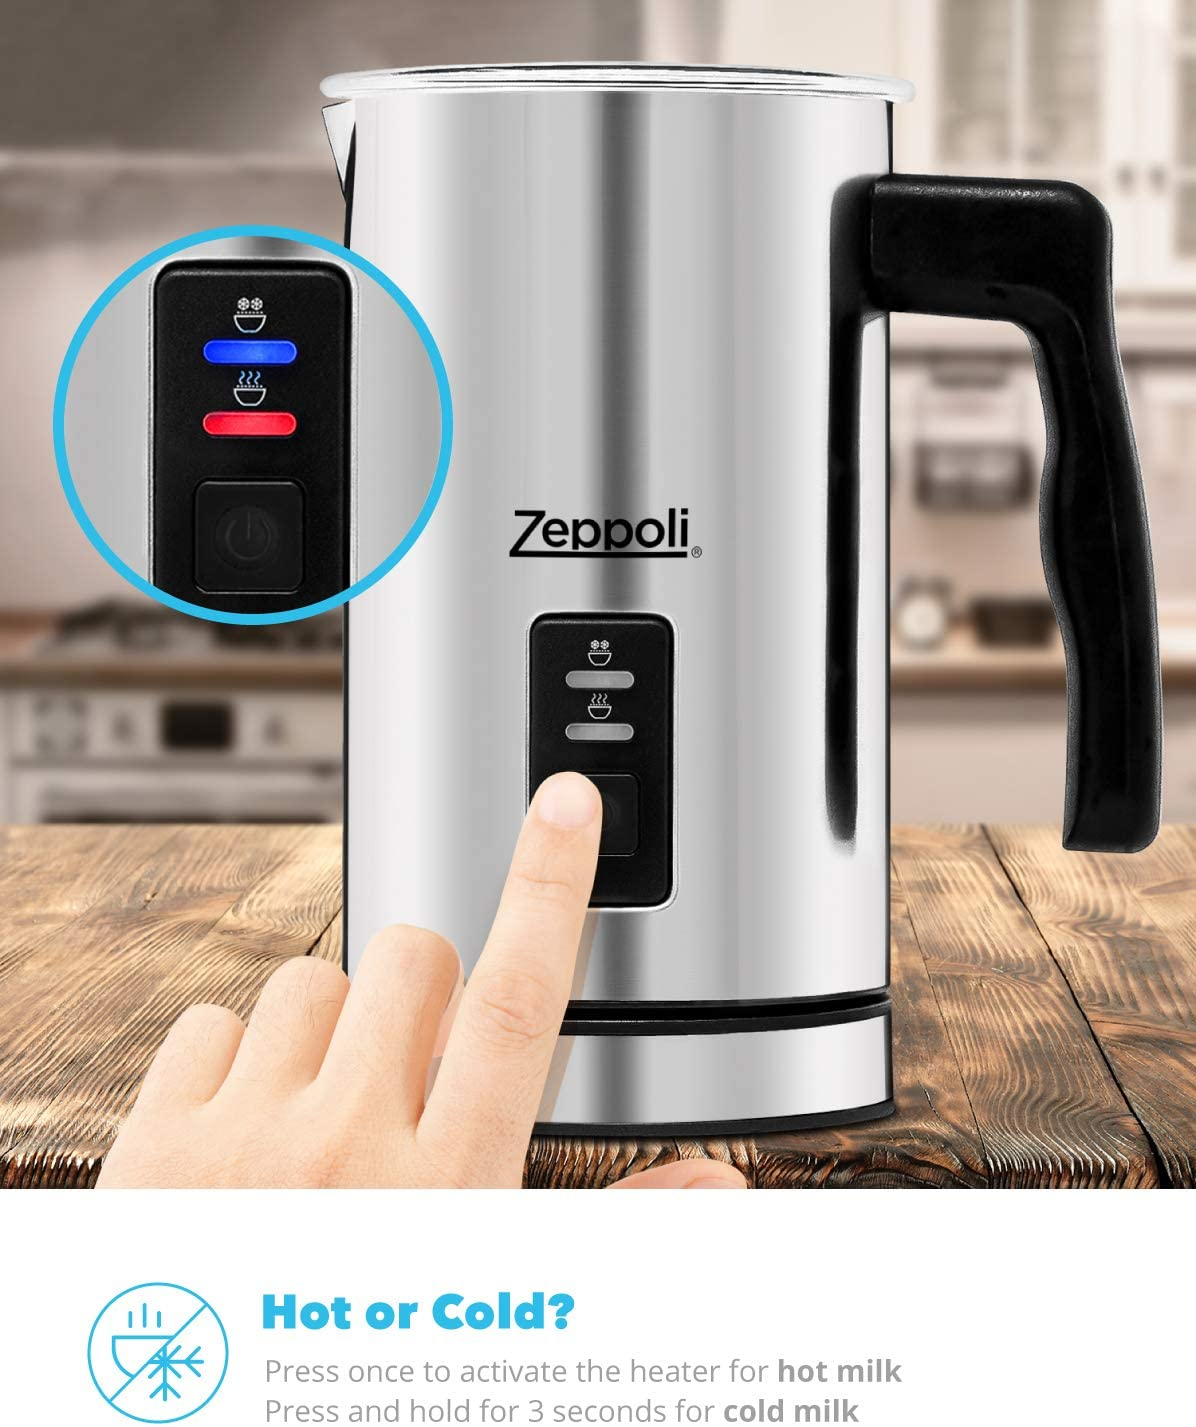 Zeppoli Milk Frother and Warmer – Automatic Milk Heater, Electric Milk Steamer and Milk Foamer Great as a Latte Frother and Cappuccino Maker for Coffee and Hot Chocolate – Comes With a Silicone Scraper